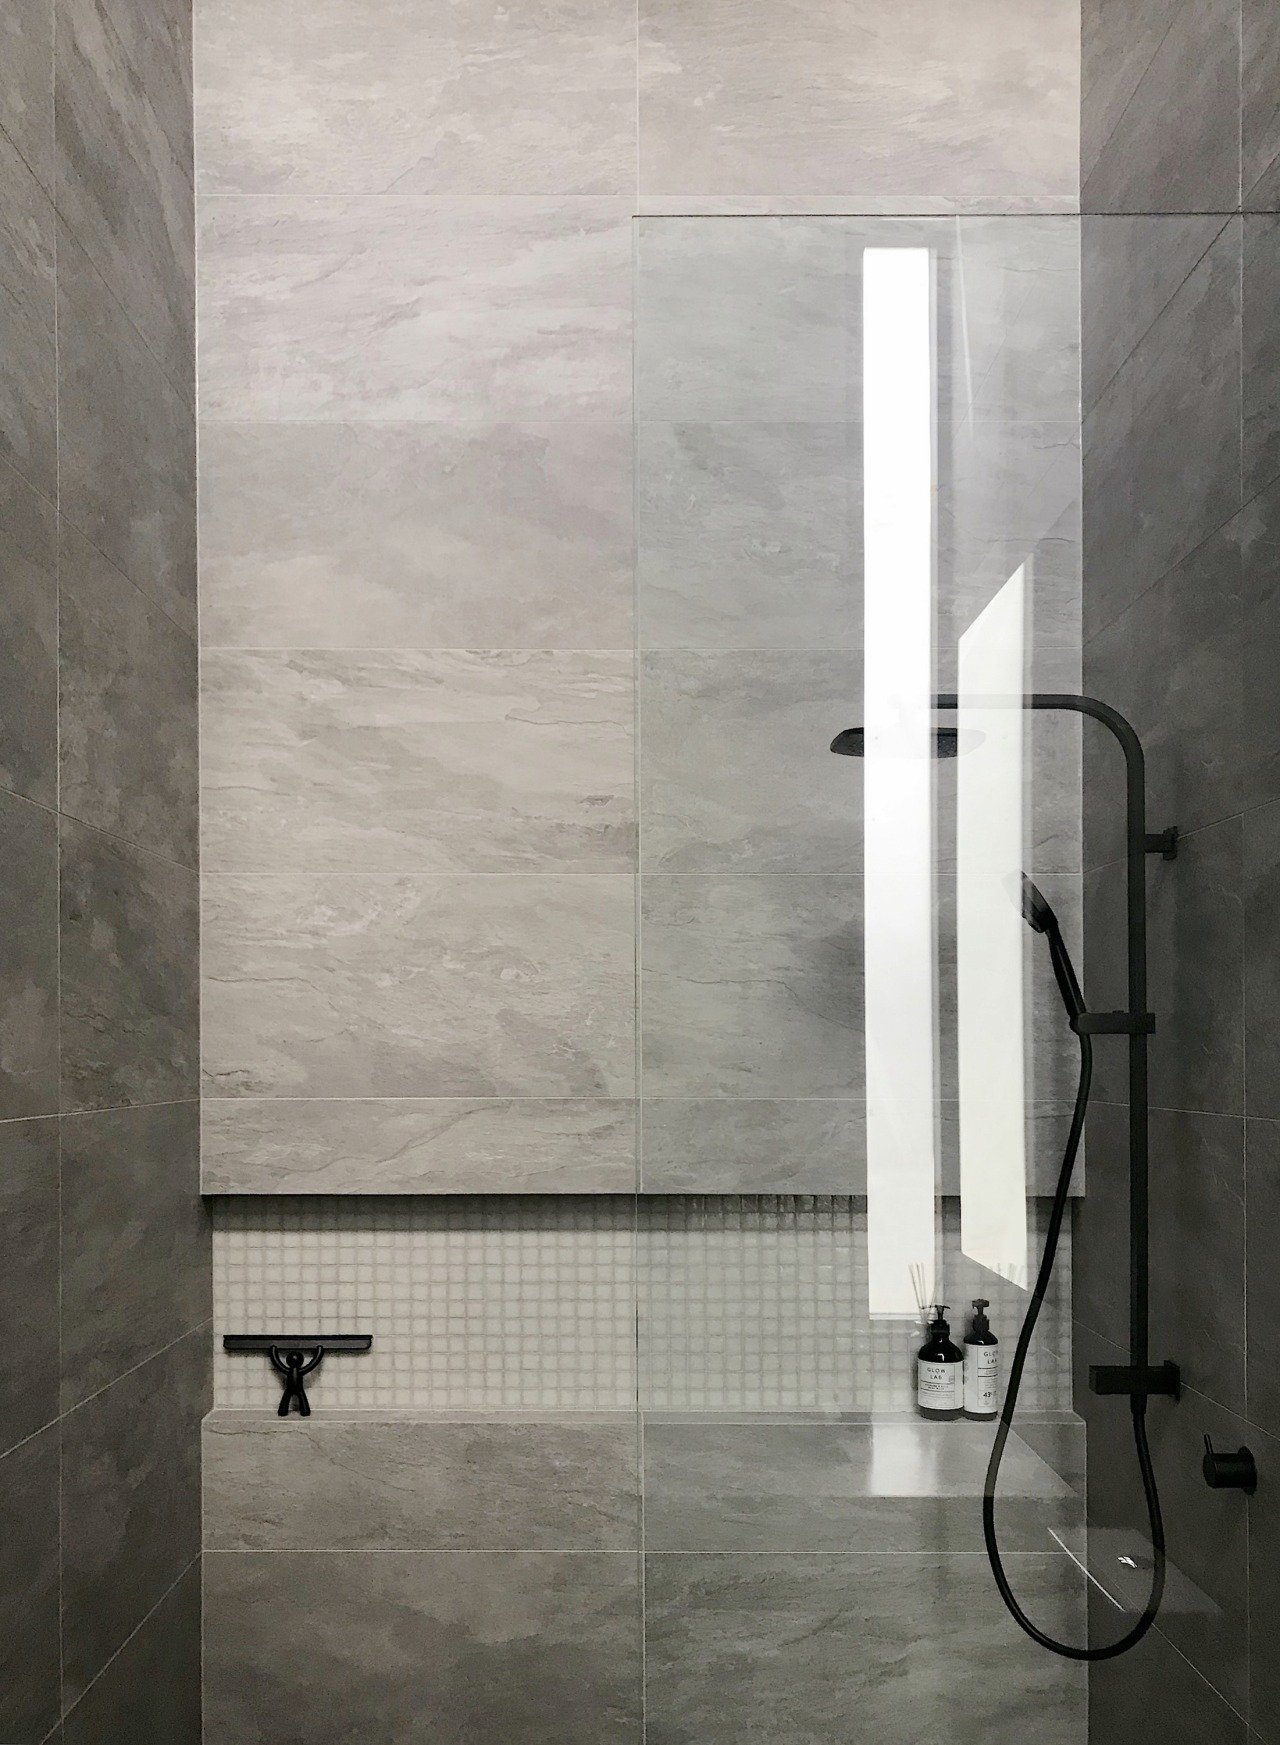 The clean-lined shower in this bathroom includes a